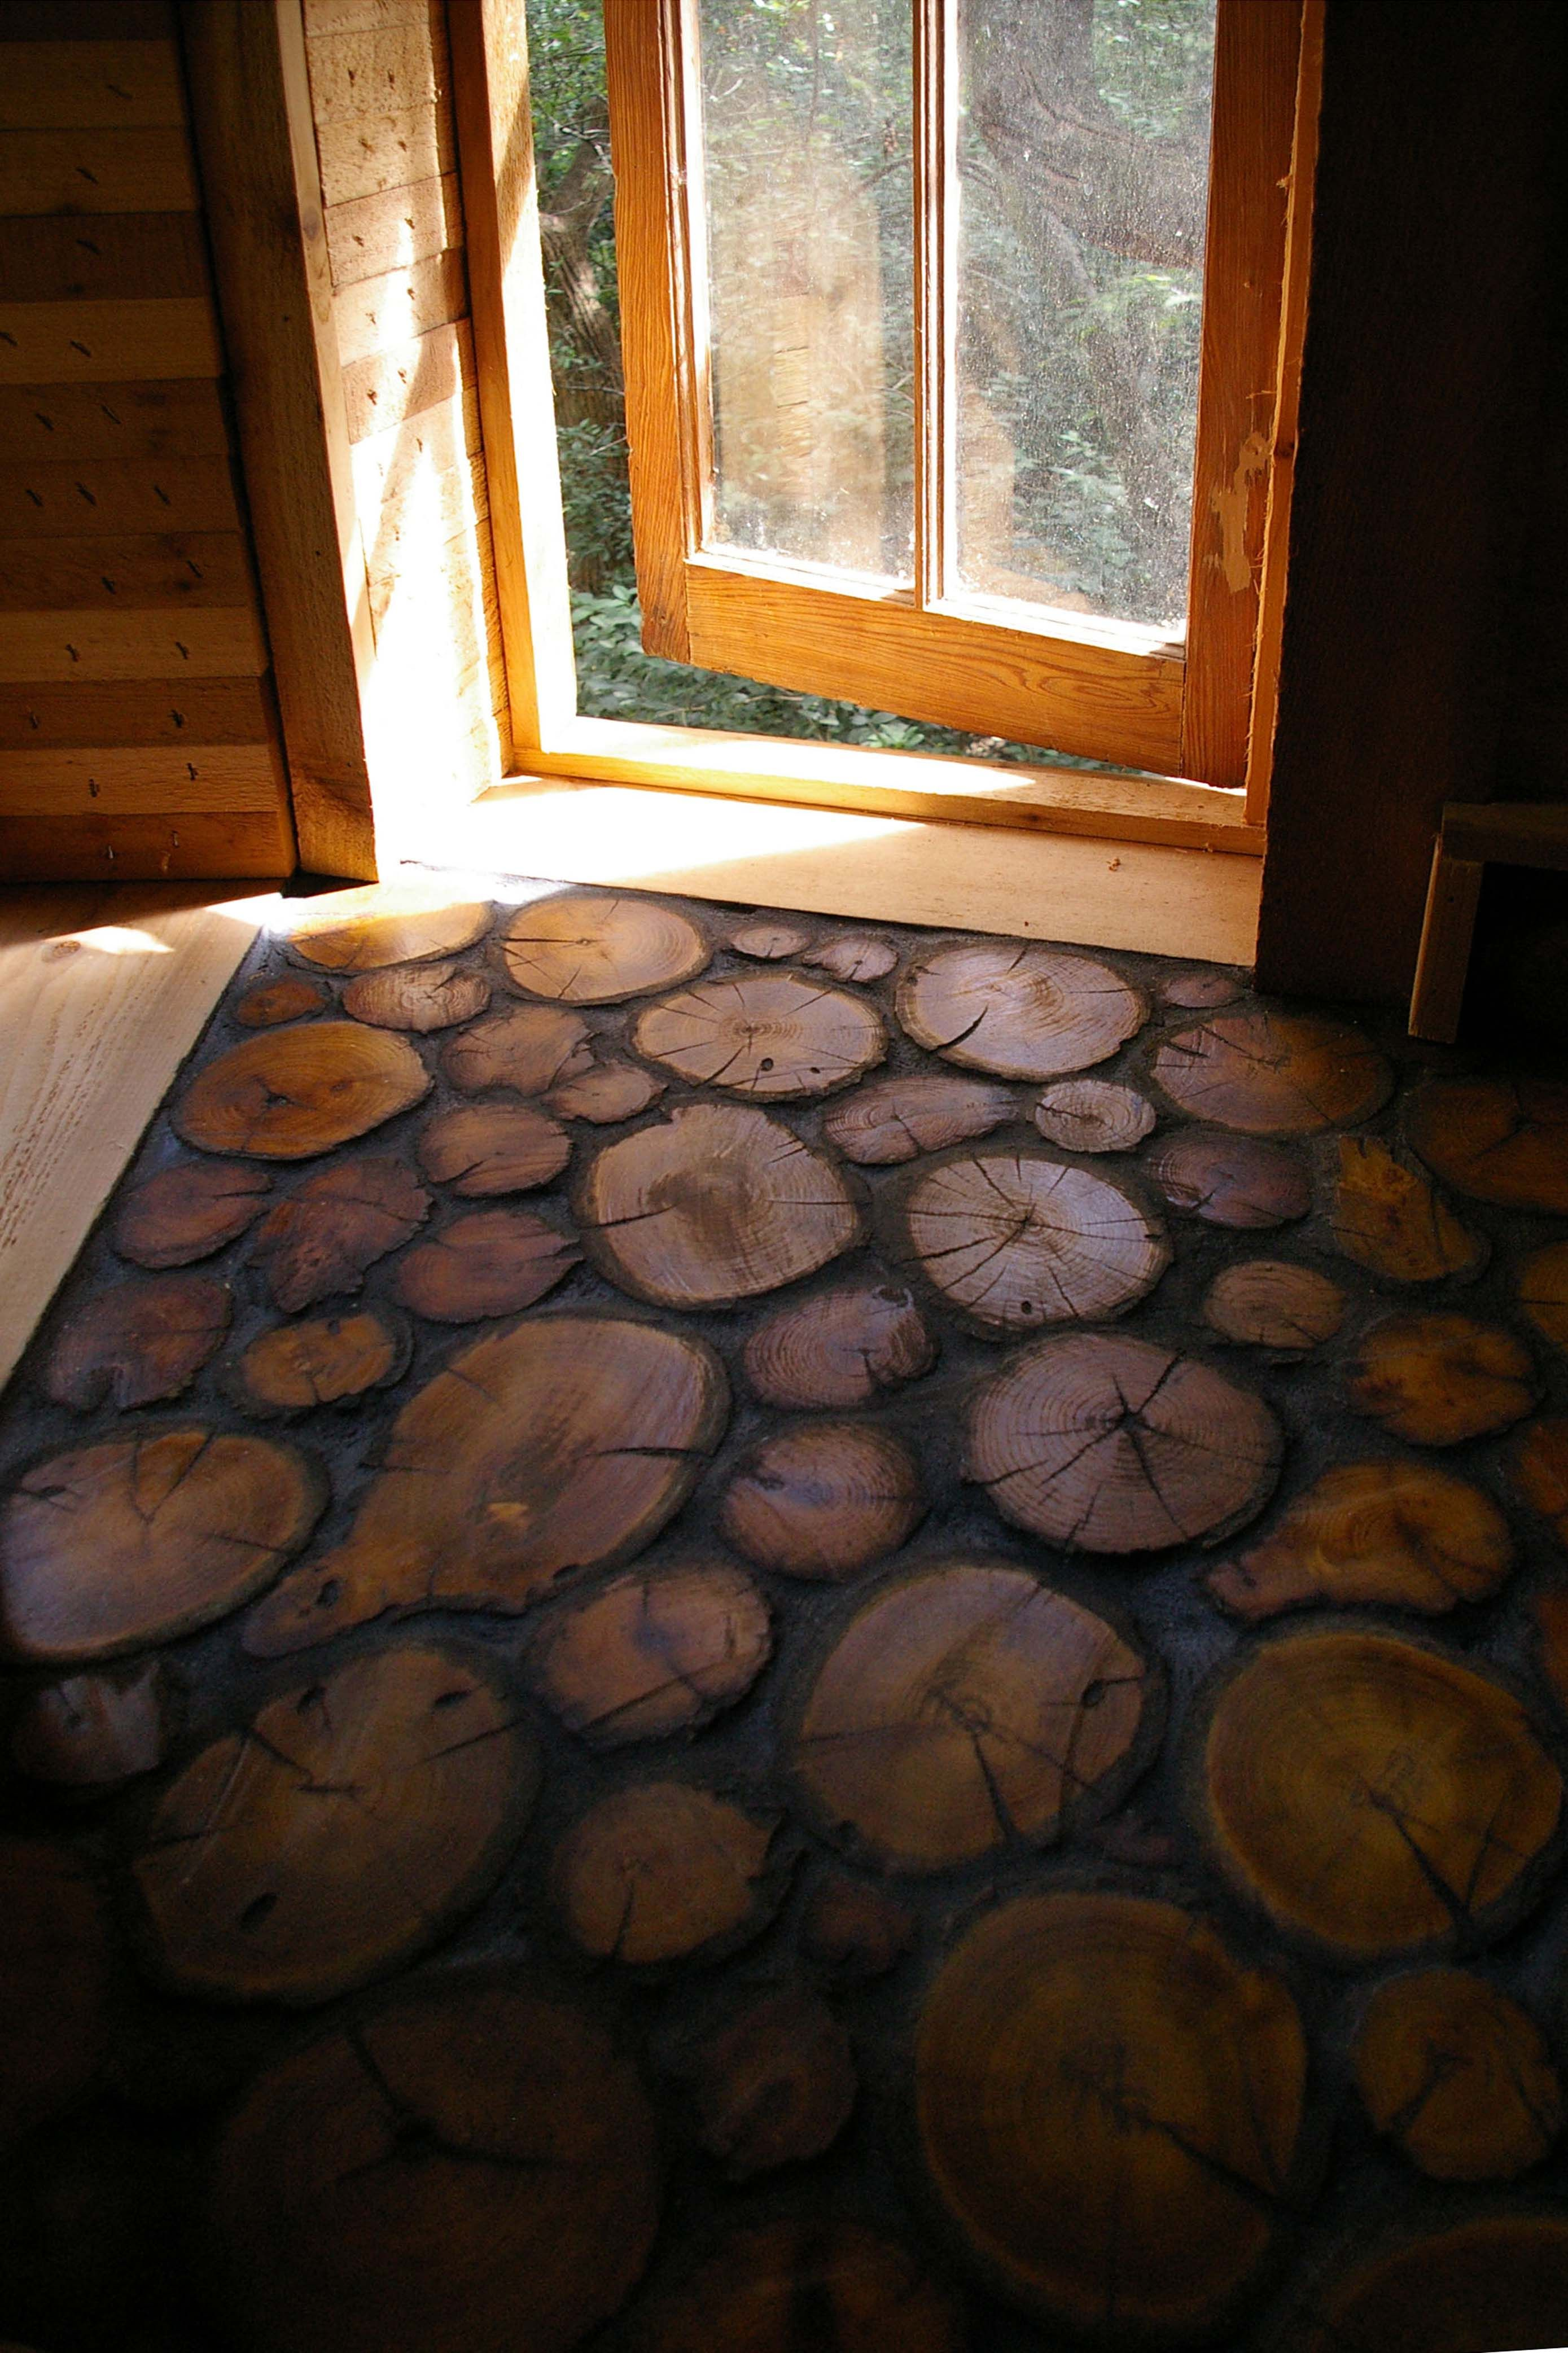 This is a glorious floor i wonder what the in fill between the wood and tile floor design for entry wood and tile floor love it log tile flooring wood floor design dailygadgetfo Images